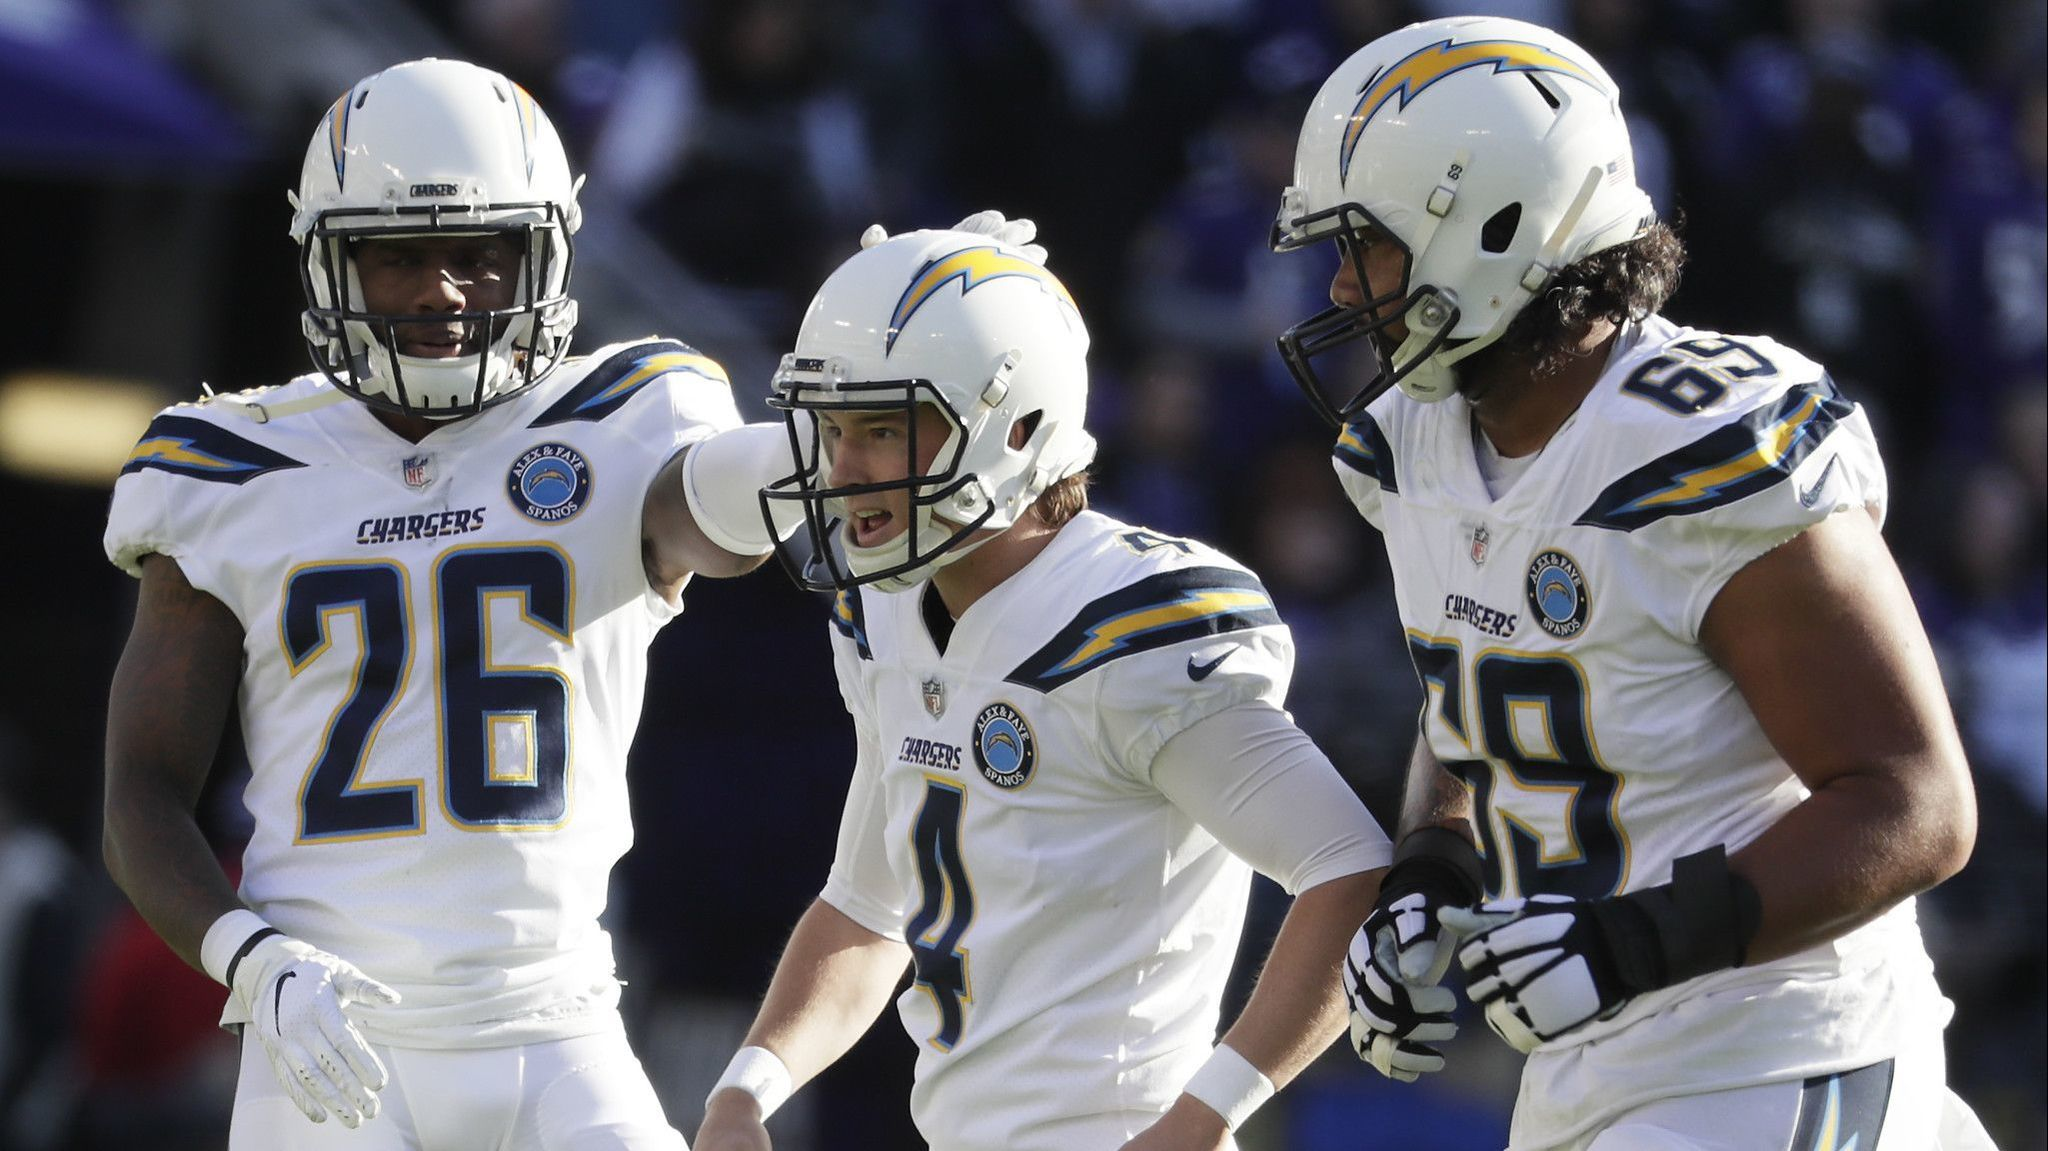 Chargers draft analysis: Michael Badgley brings stability to kicking game